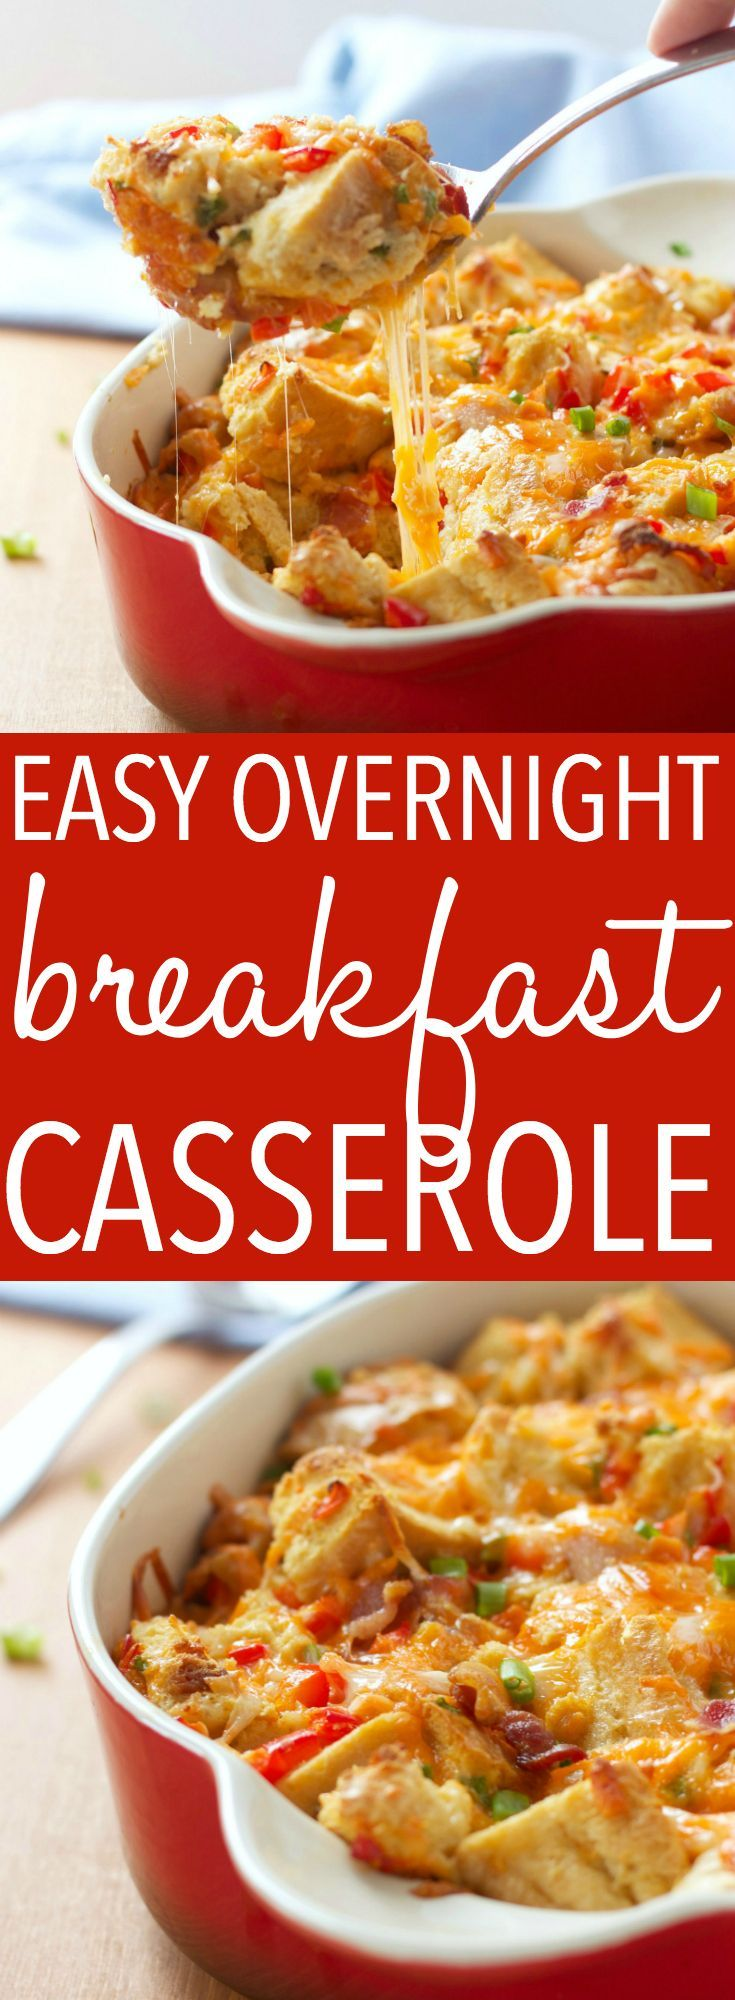 Easy Make-Ahead Breakfast Casserole This Easy Make-Ahead Breakfast Casserole is a delicious, lighter twist on an old family favourite, A make-ahead breakfast casserole with bacon, eggs, and cheese! Recipe from !